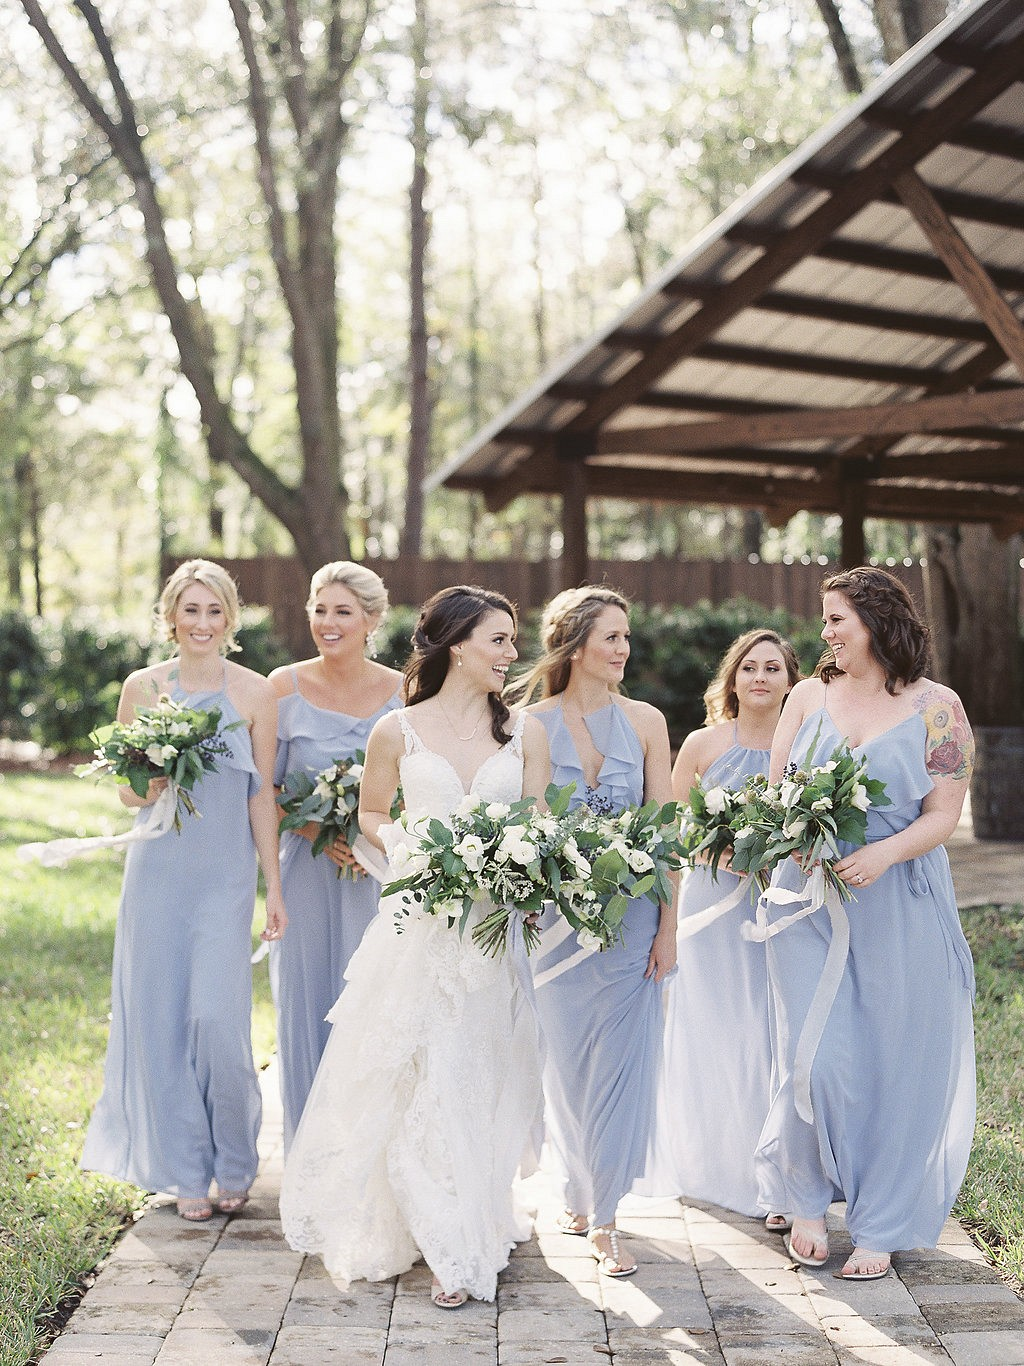 Amanda And Stephen S Dusty Blue Wedding With Lots Of Greenery